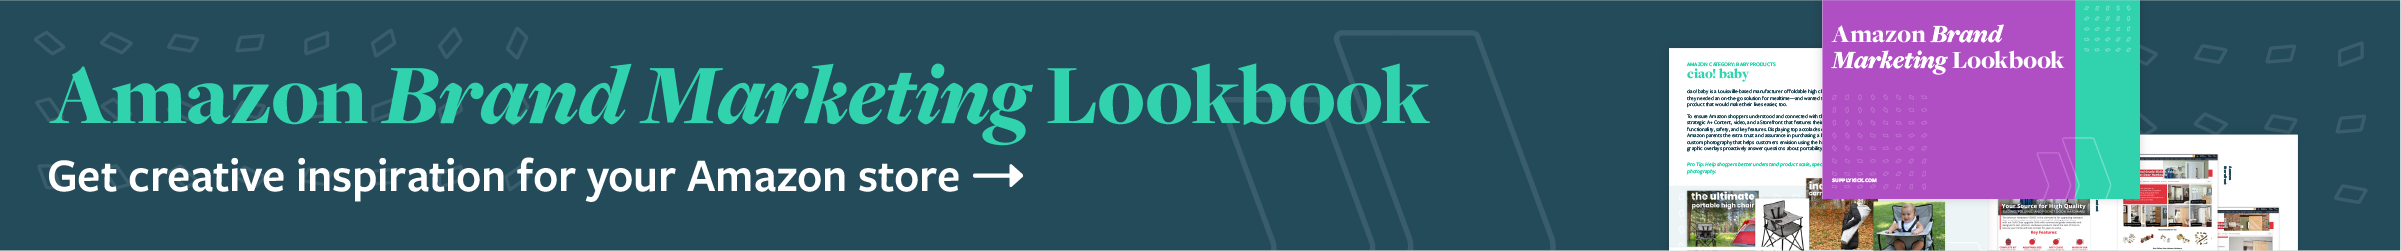 Amazon Brand Marketing Lookbook: Creative Inspiration for Your Amazon Store. Learn More.